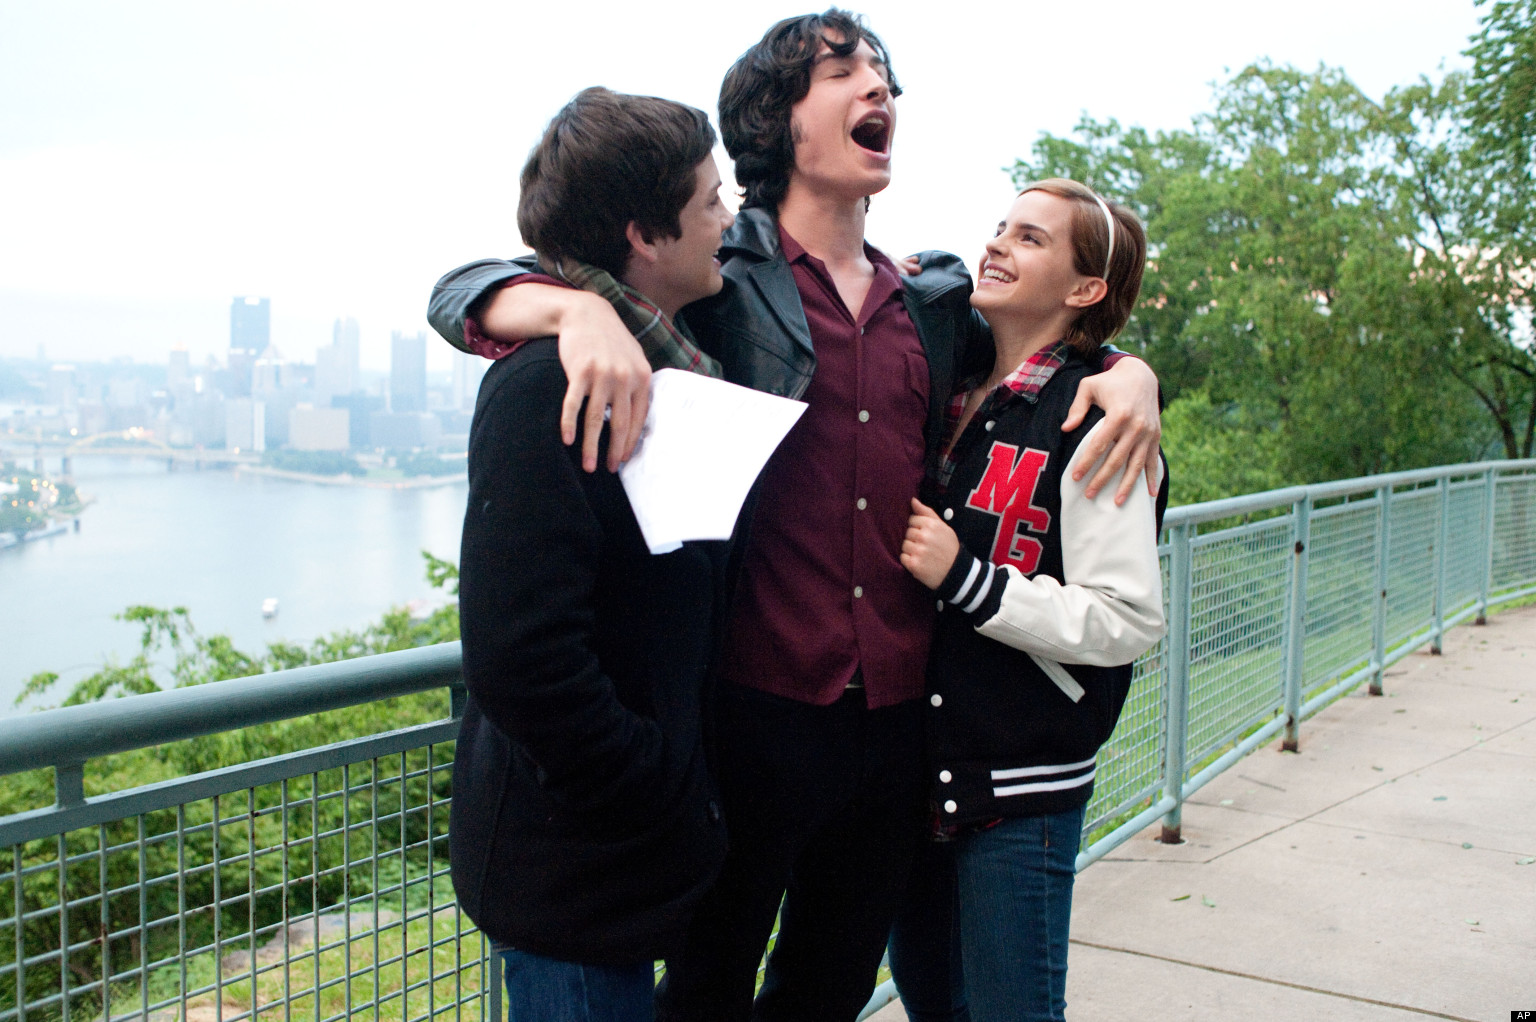 Logan Lerman, Ezra Miller and Emma Watson in una scena di <em>The Perks of Being a Wallflower</em>. Il film è spesso ambientato al liceo. (AP Photo/Summit Entertainment, John Bramley)